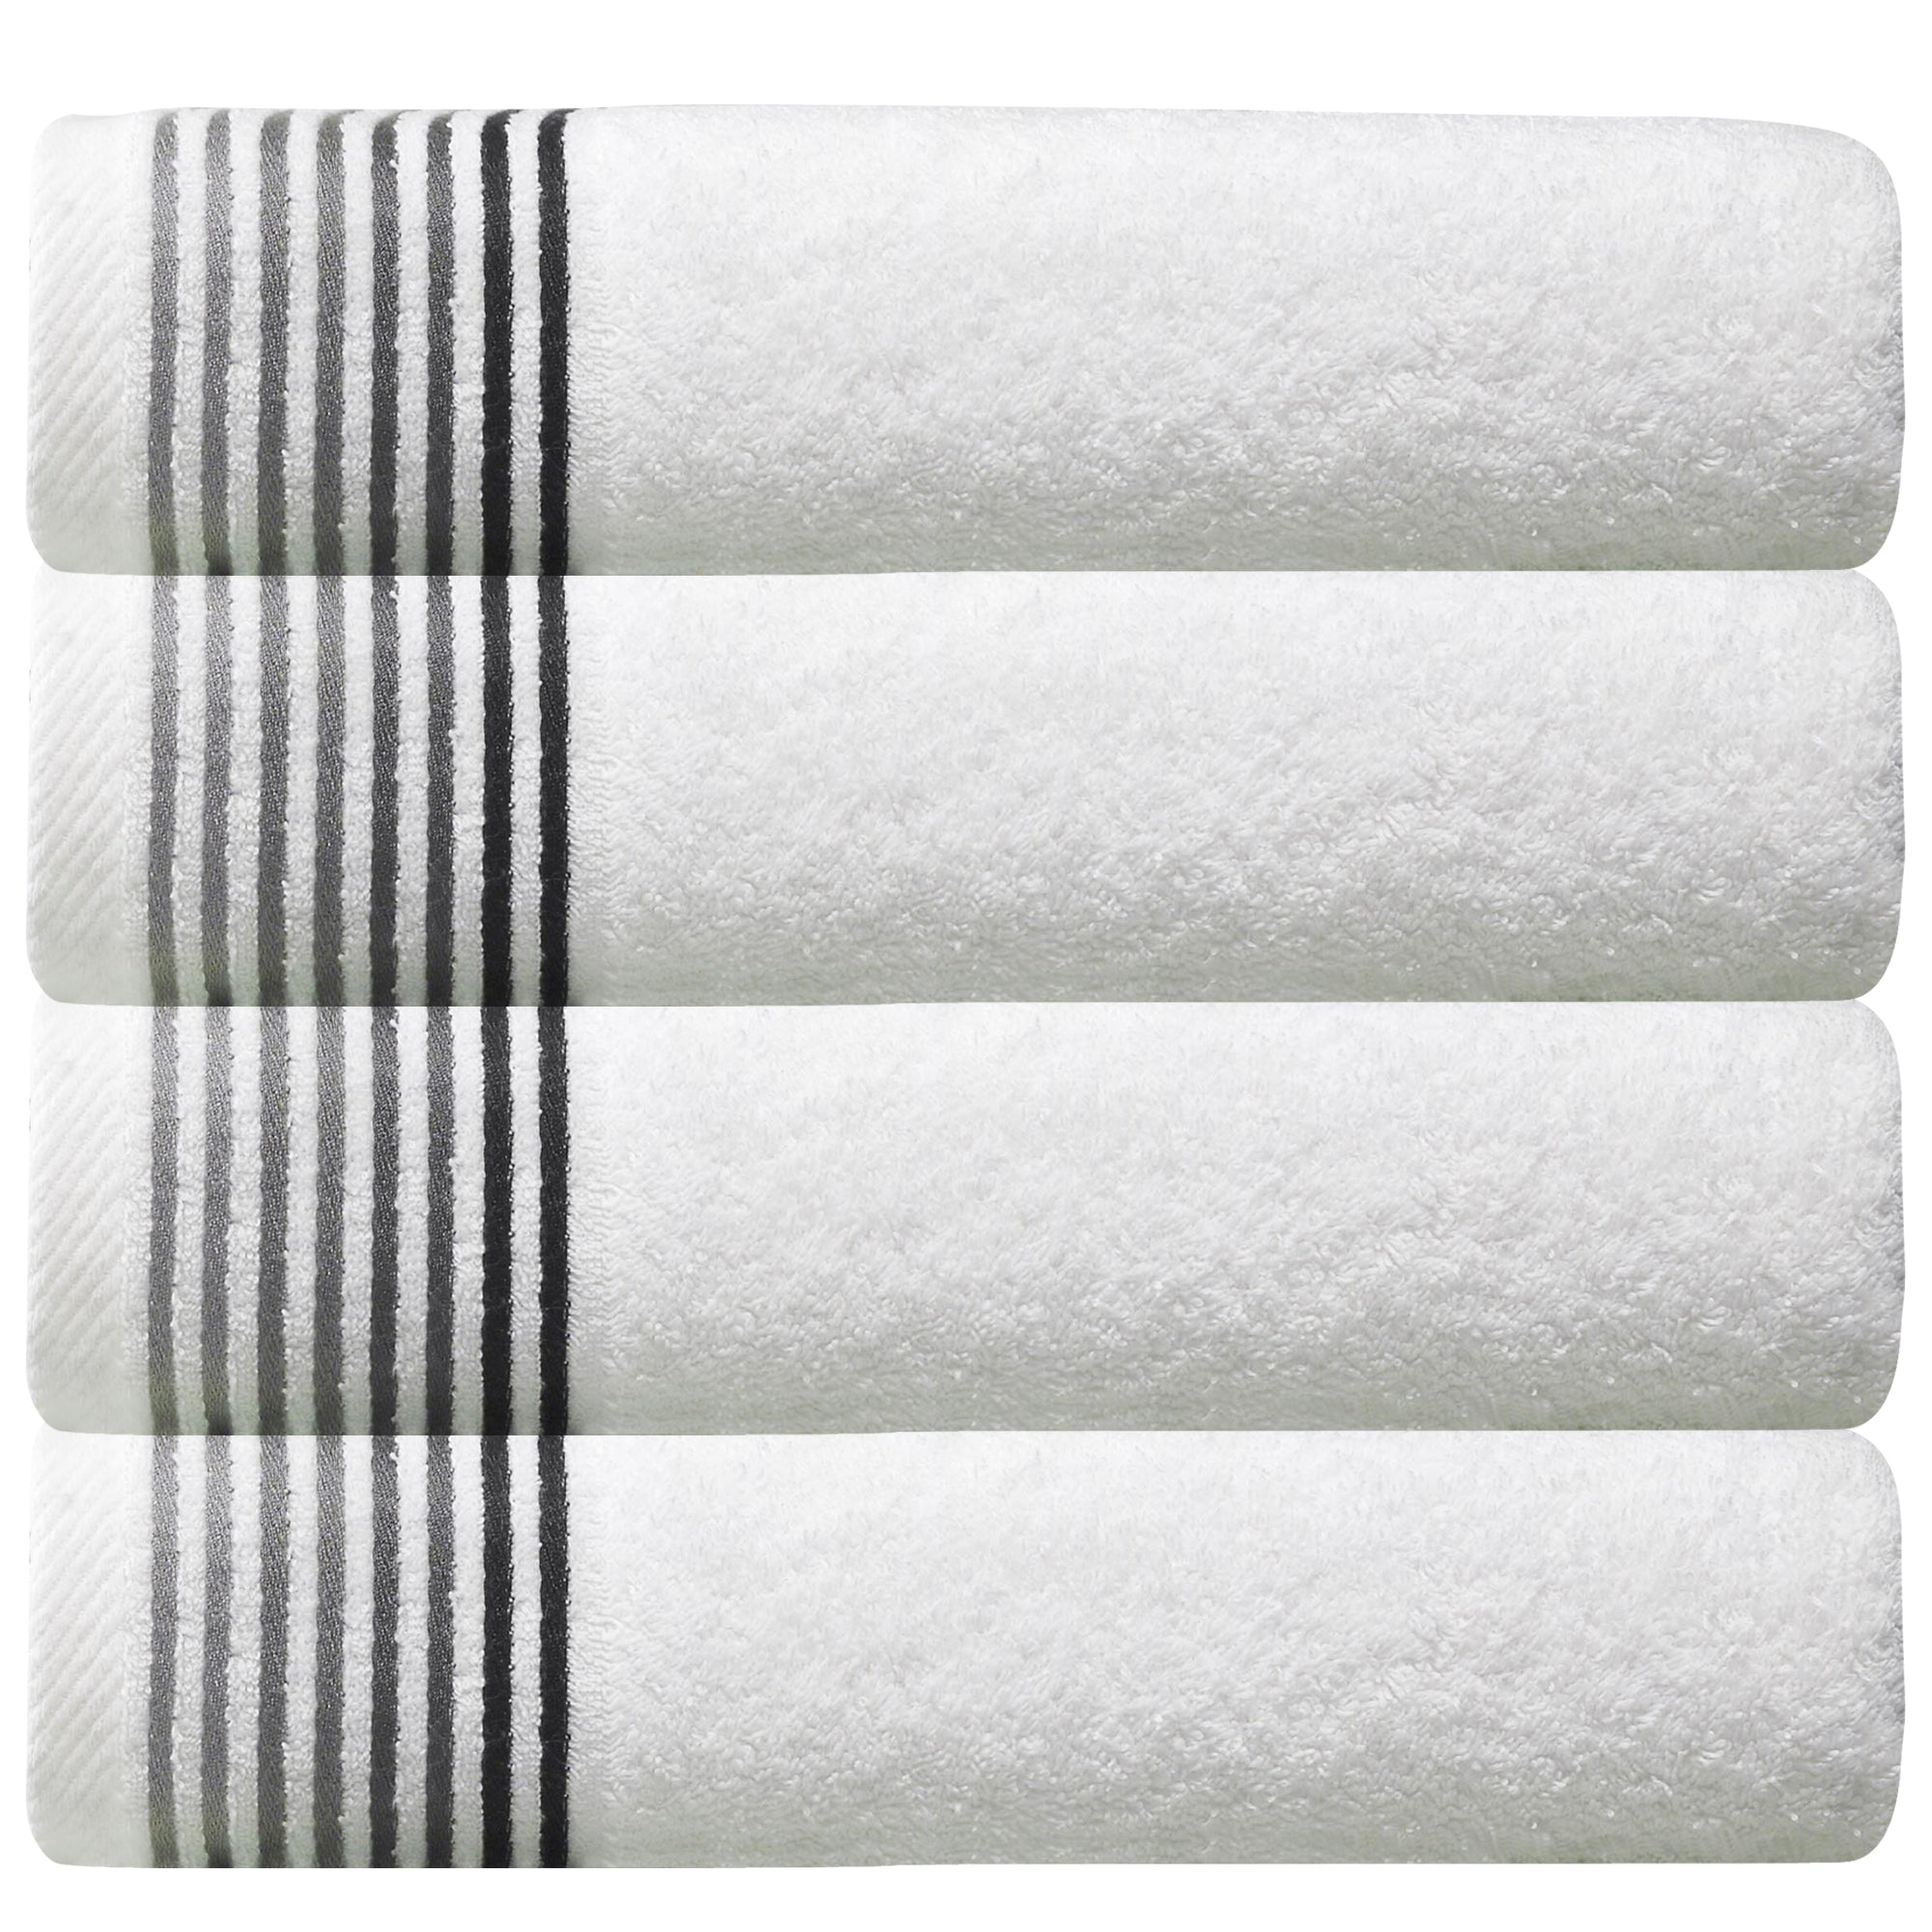 Dimora Turkish Cotton Bath Towels - 40 Pieces